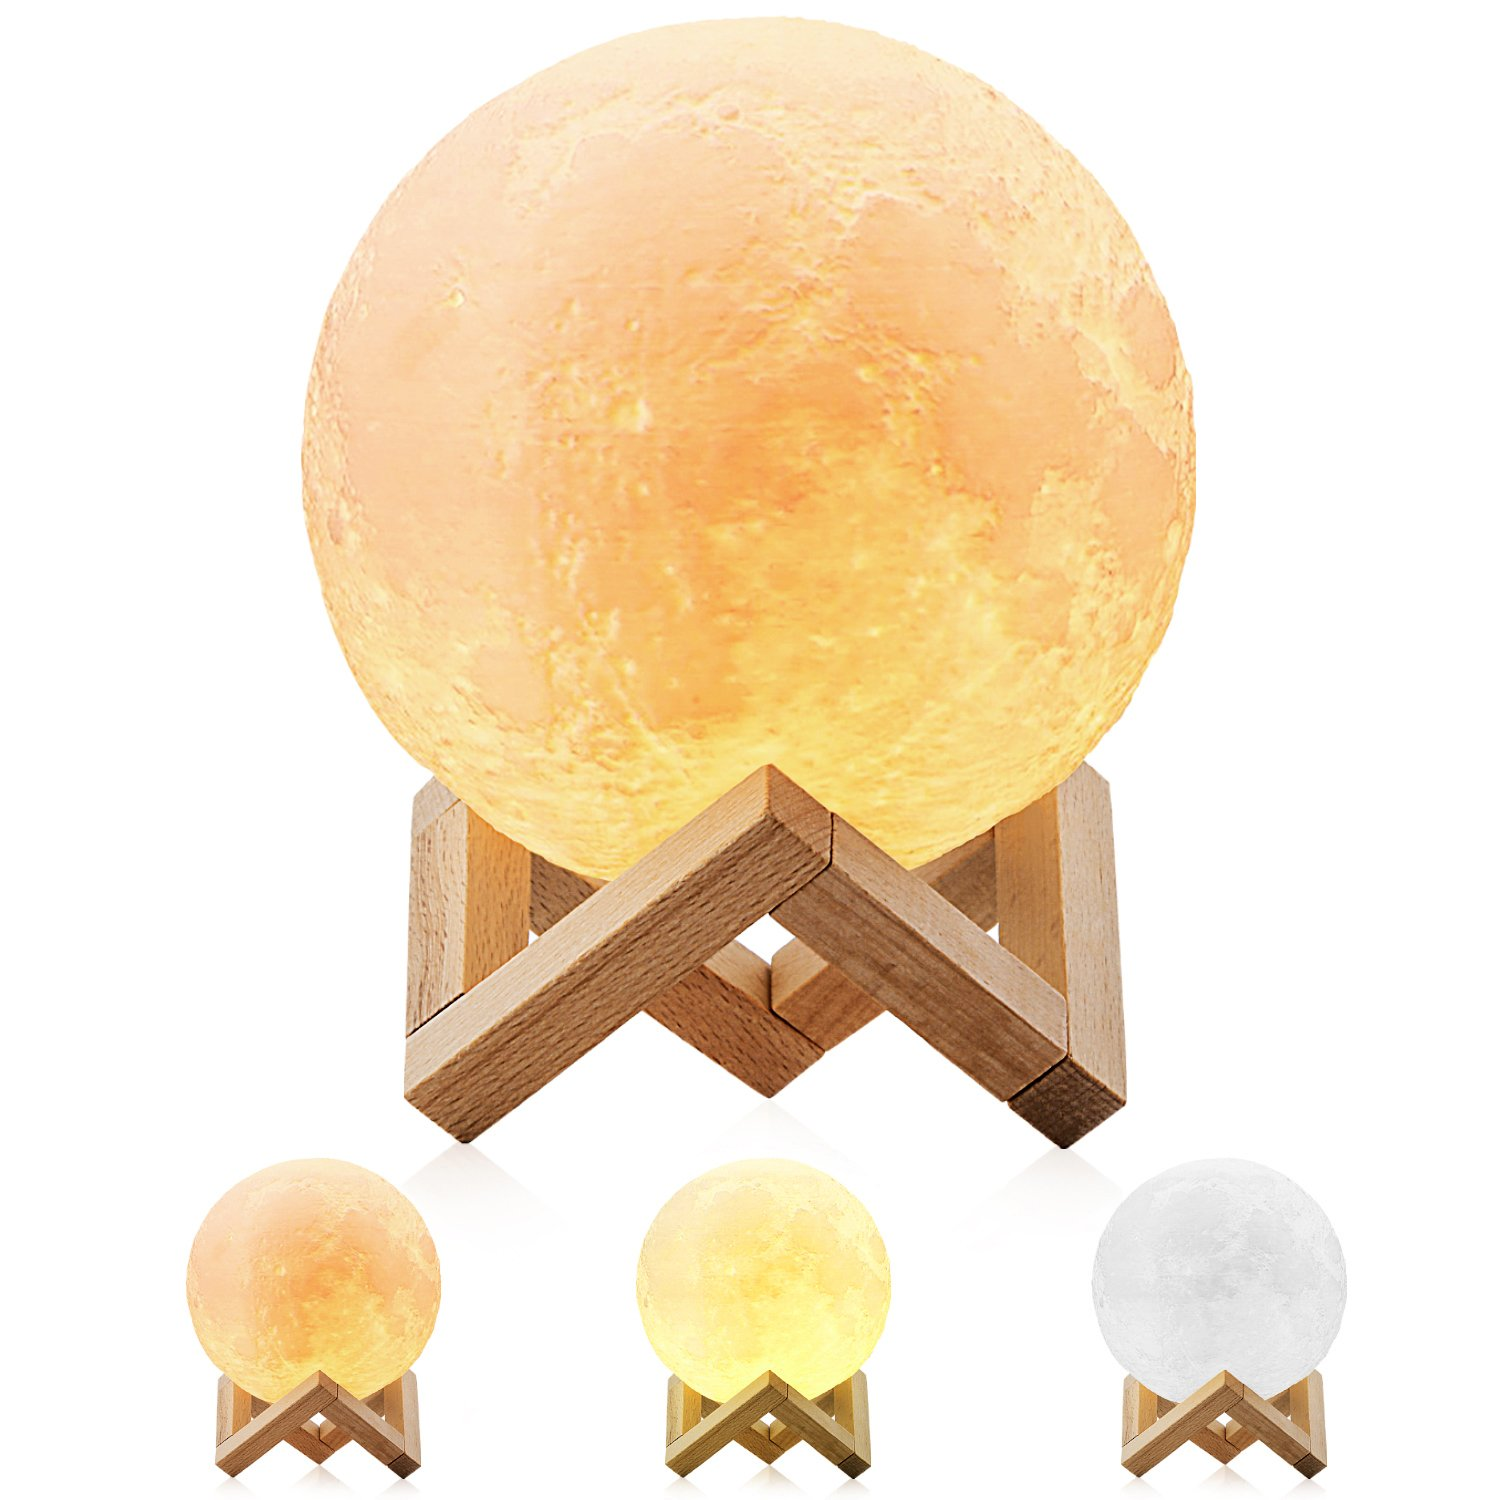 Magicfly Moon lamp 5.9 inch 3D Printing Dimmable with Tap Control, Rechargeable Lunar Home Decorative Night Light for Creative Gift